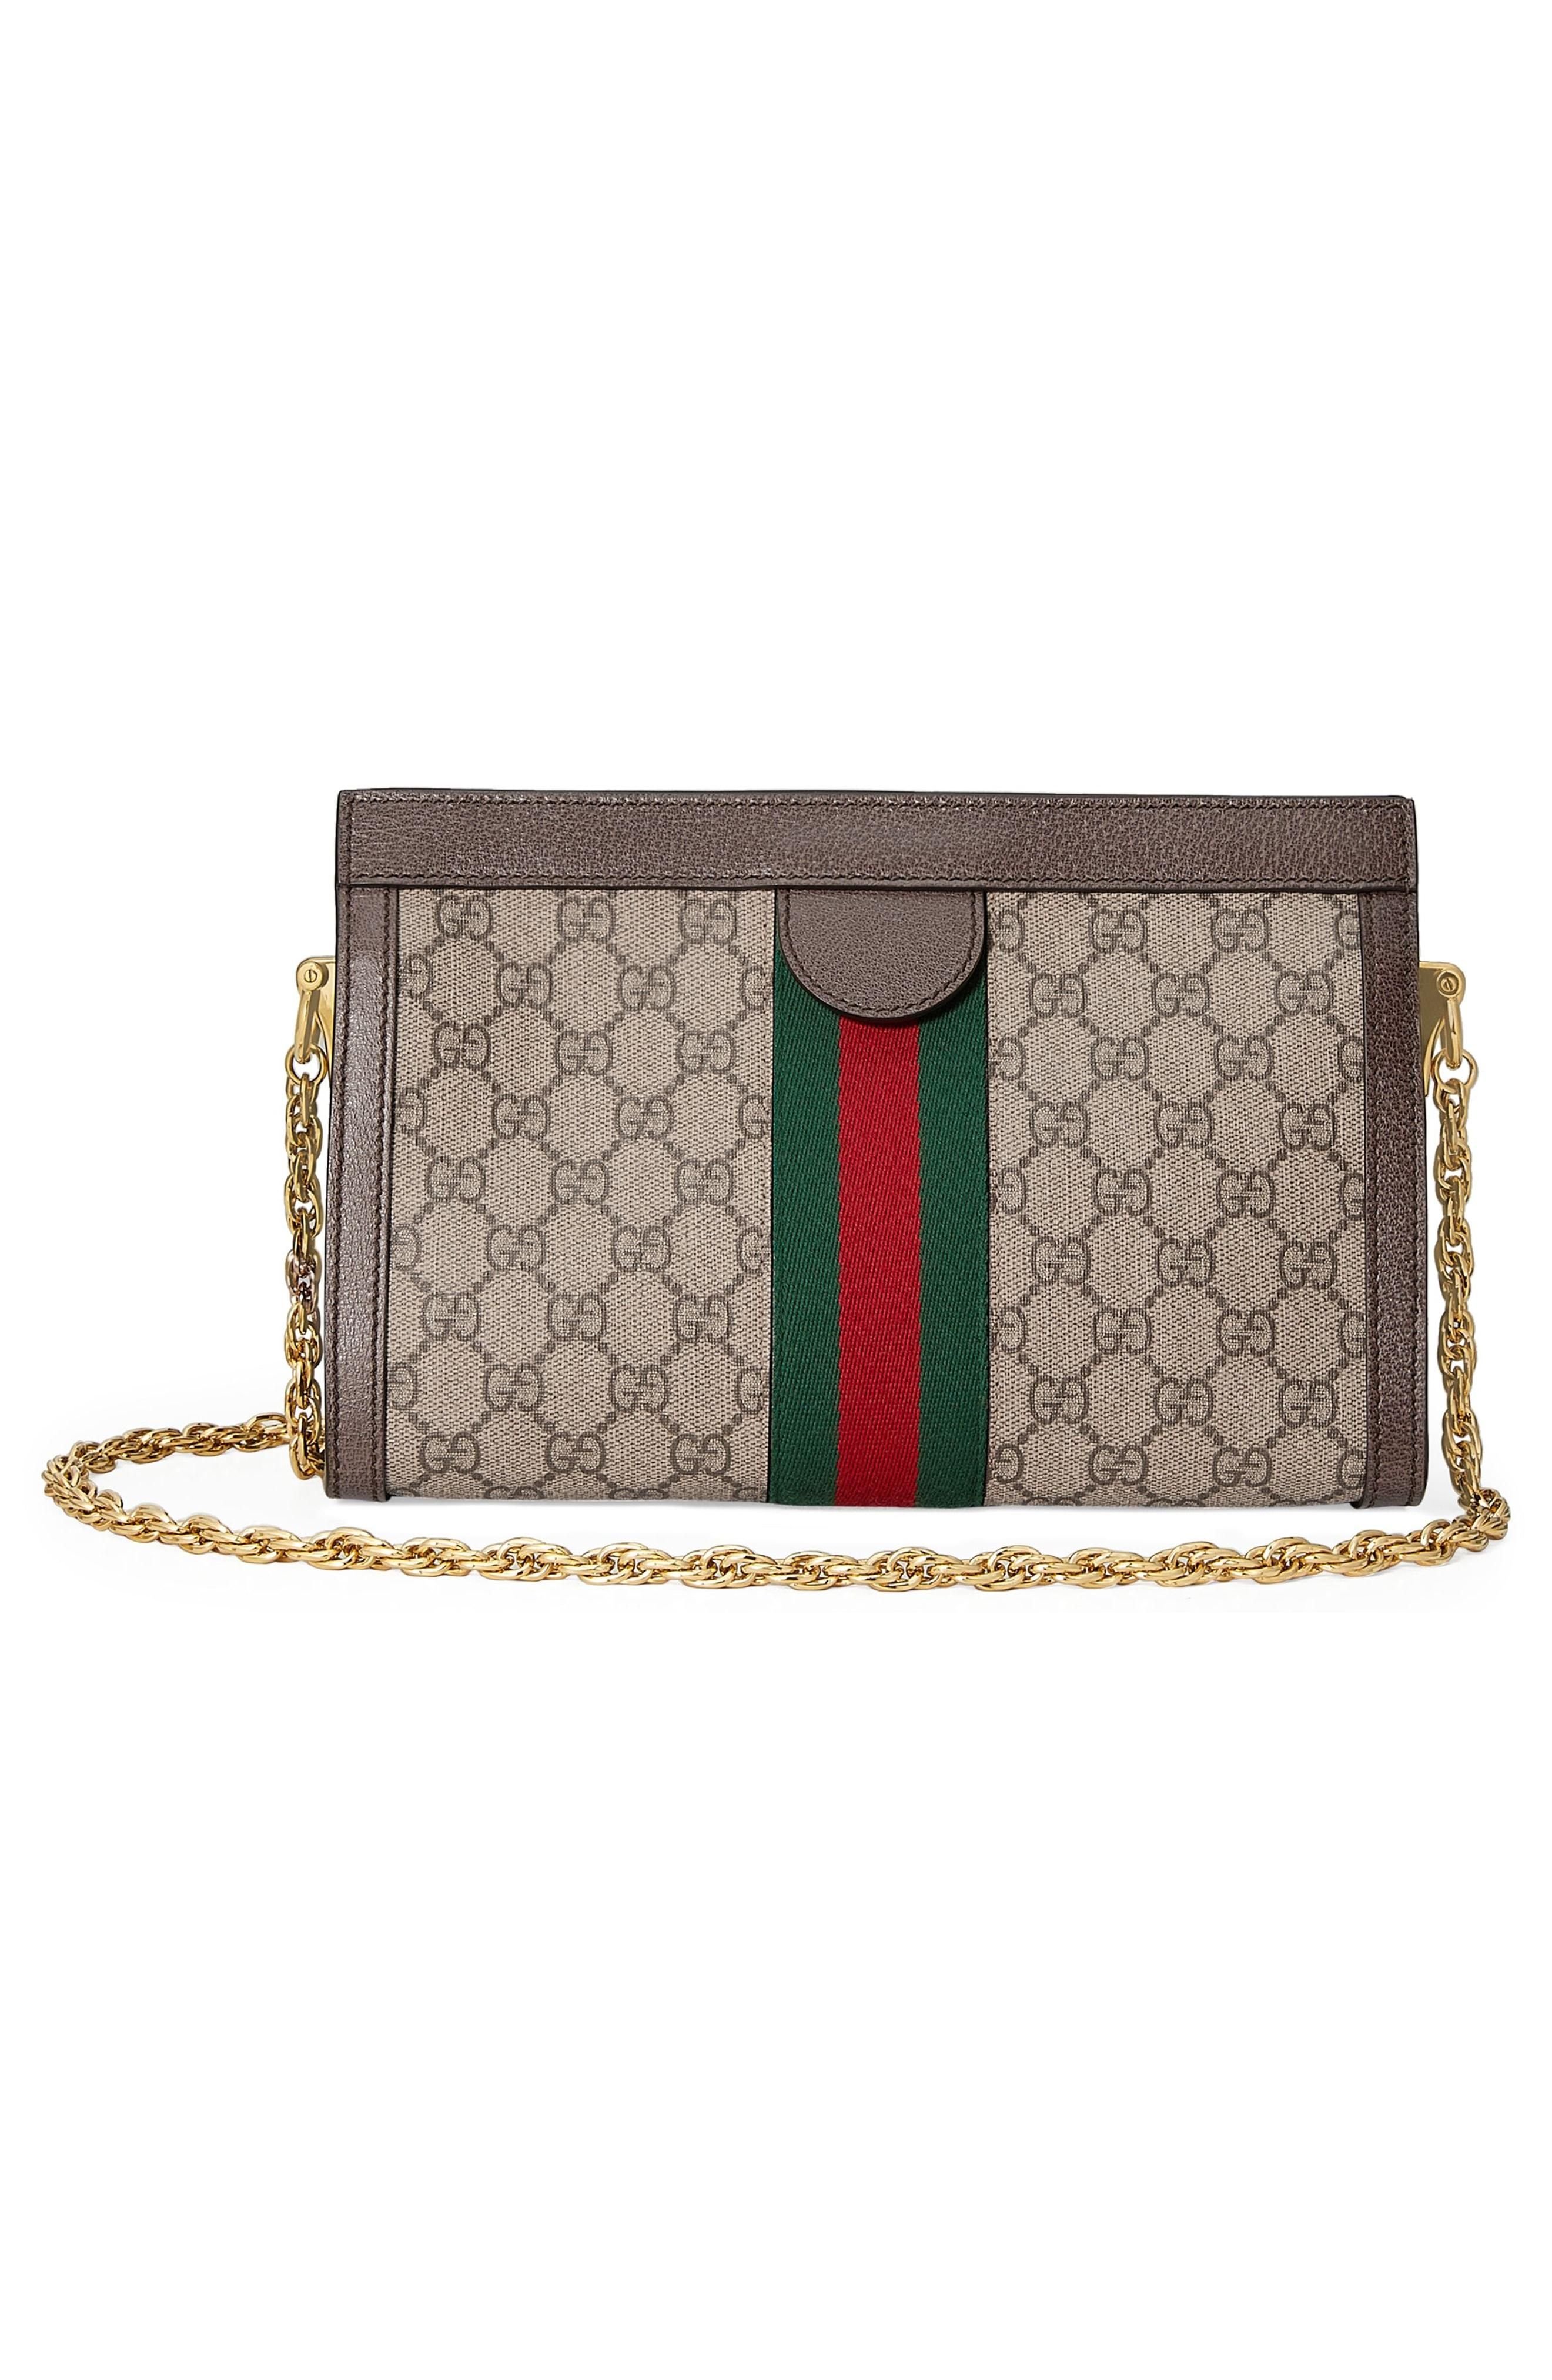 f056ce4470e GUCCI. Ophidia Textured Leather-Trimmed Printed Coated-Canvas Shoulder Bag  ...